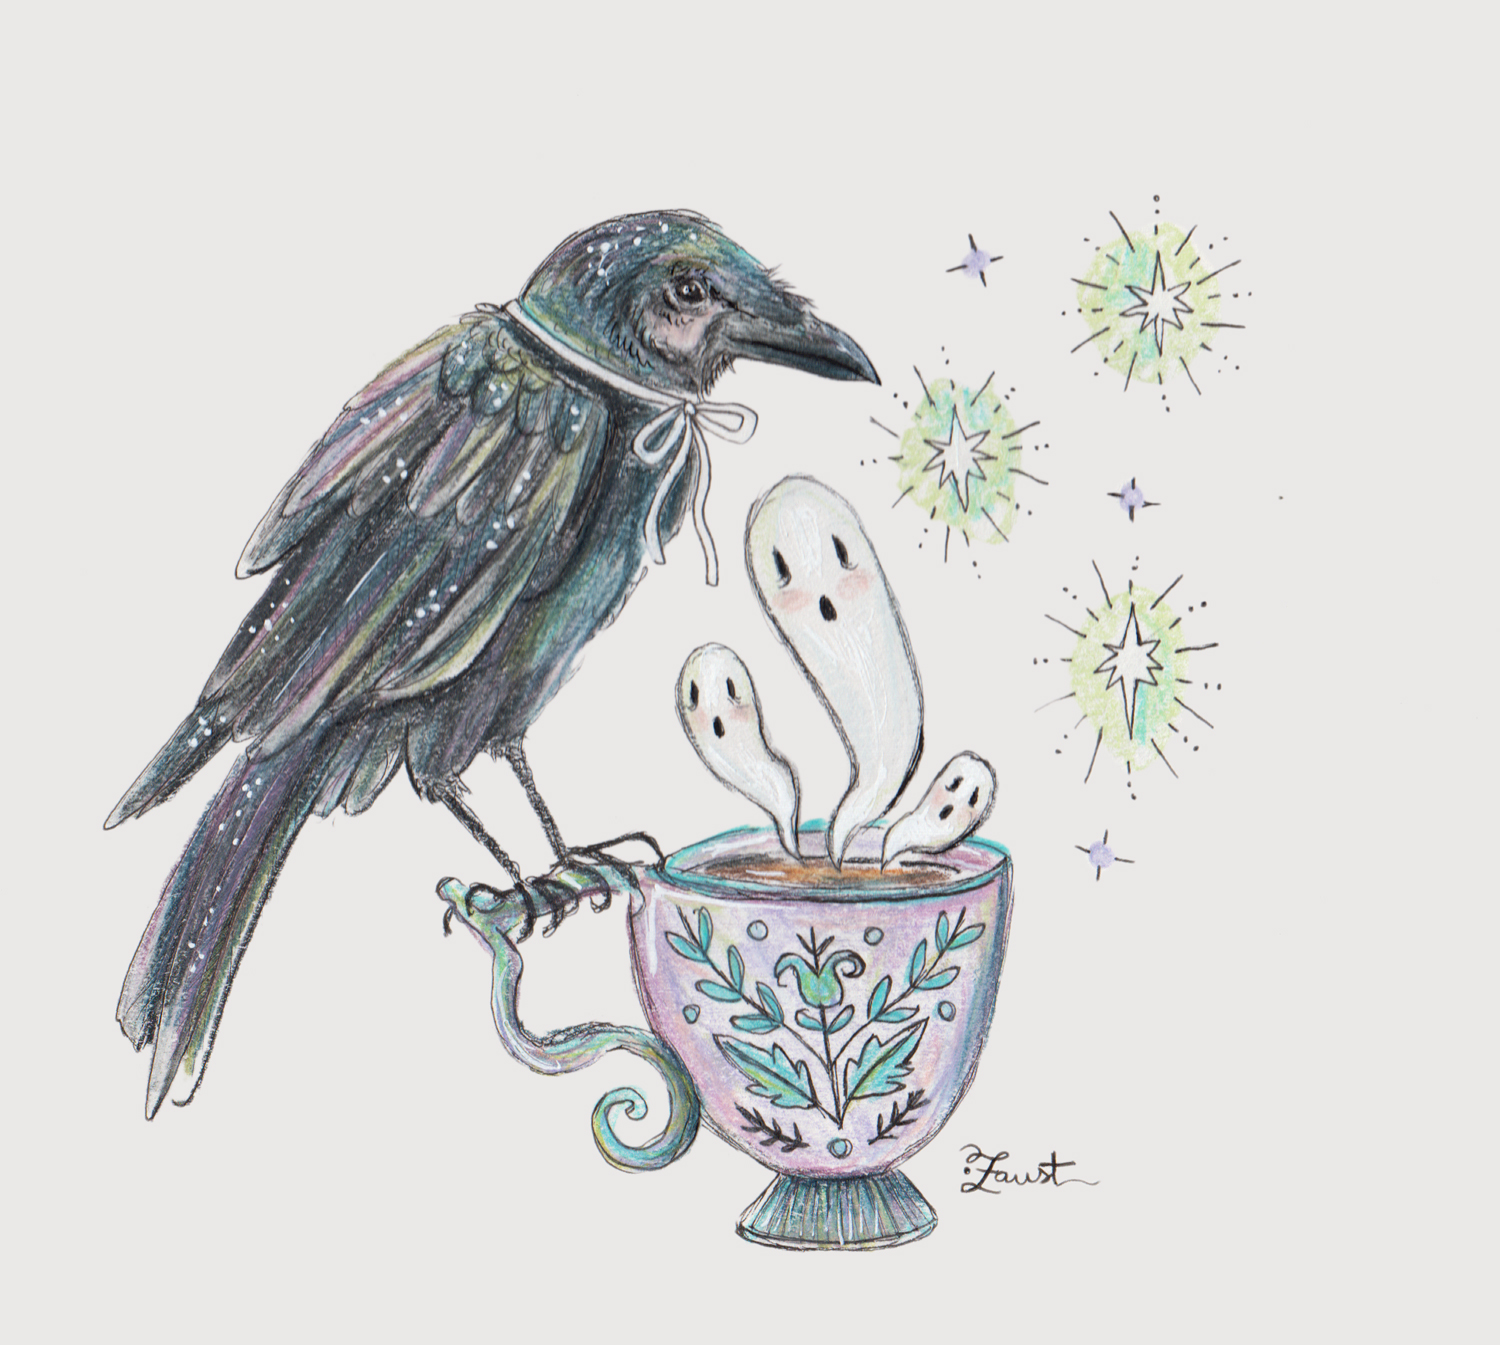 The Raven and the Ghostea